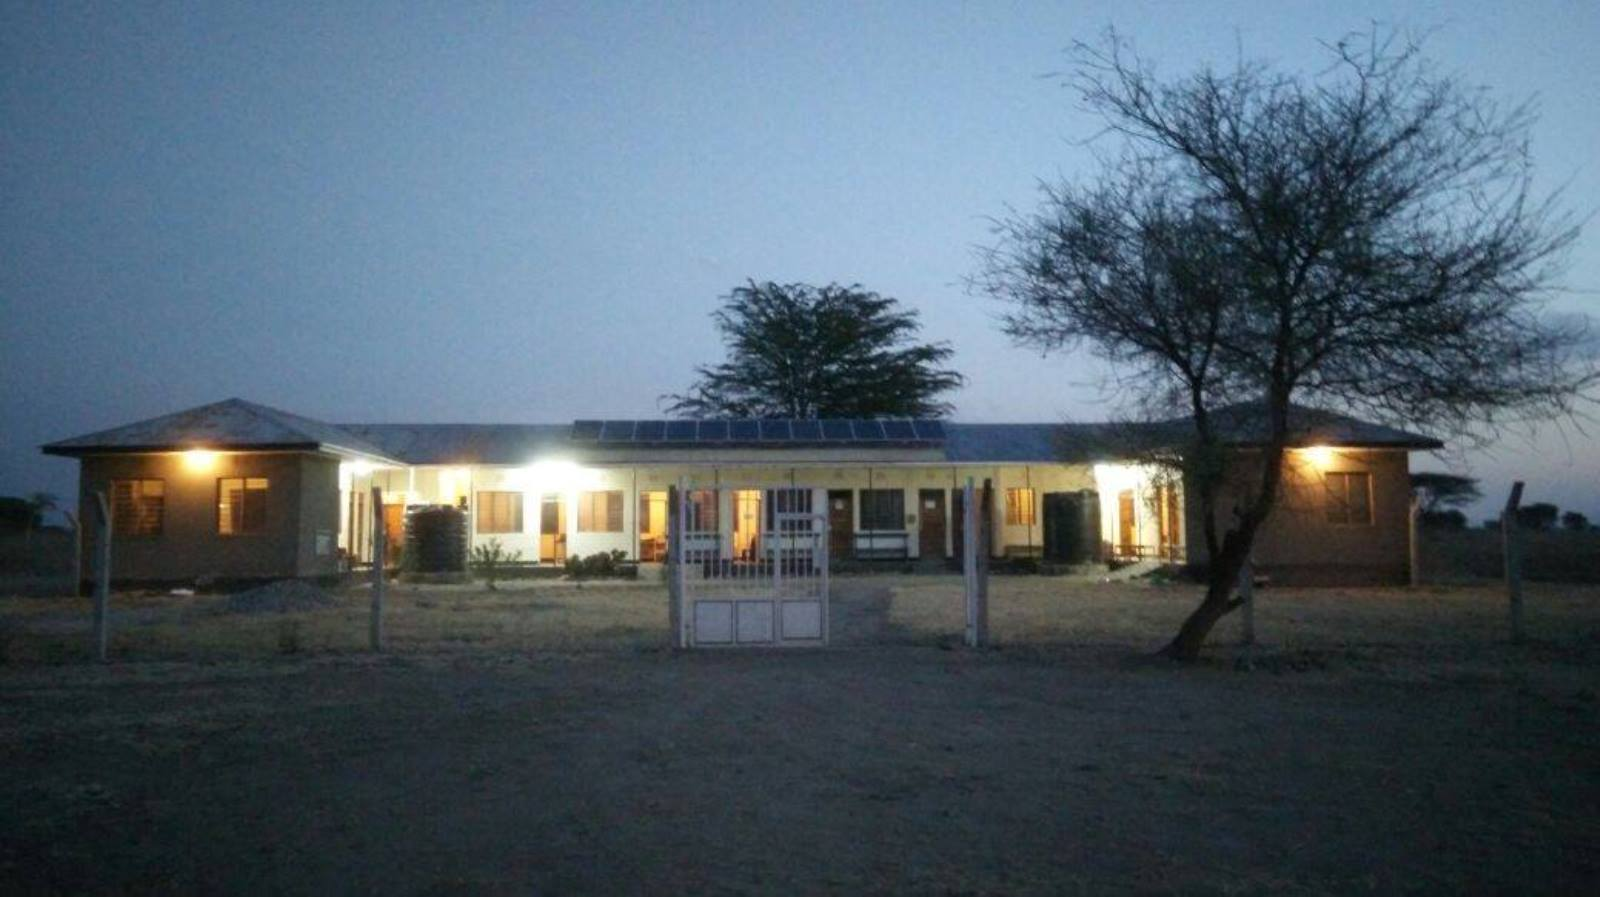 Nkaiti Medical Center, lit up at night for the very first time thanks to Israeli engineering students. Photo via Facebook